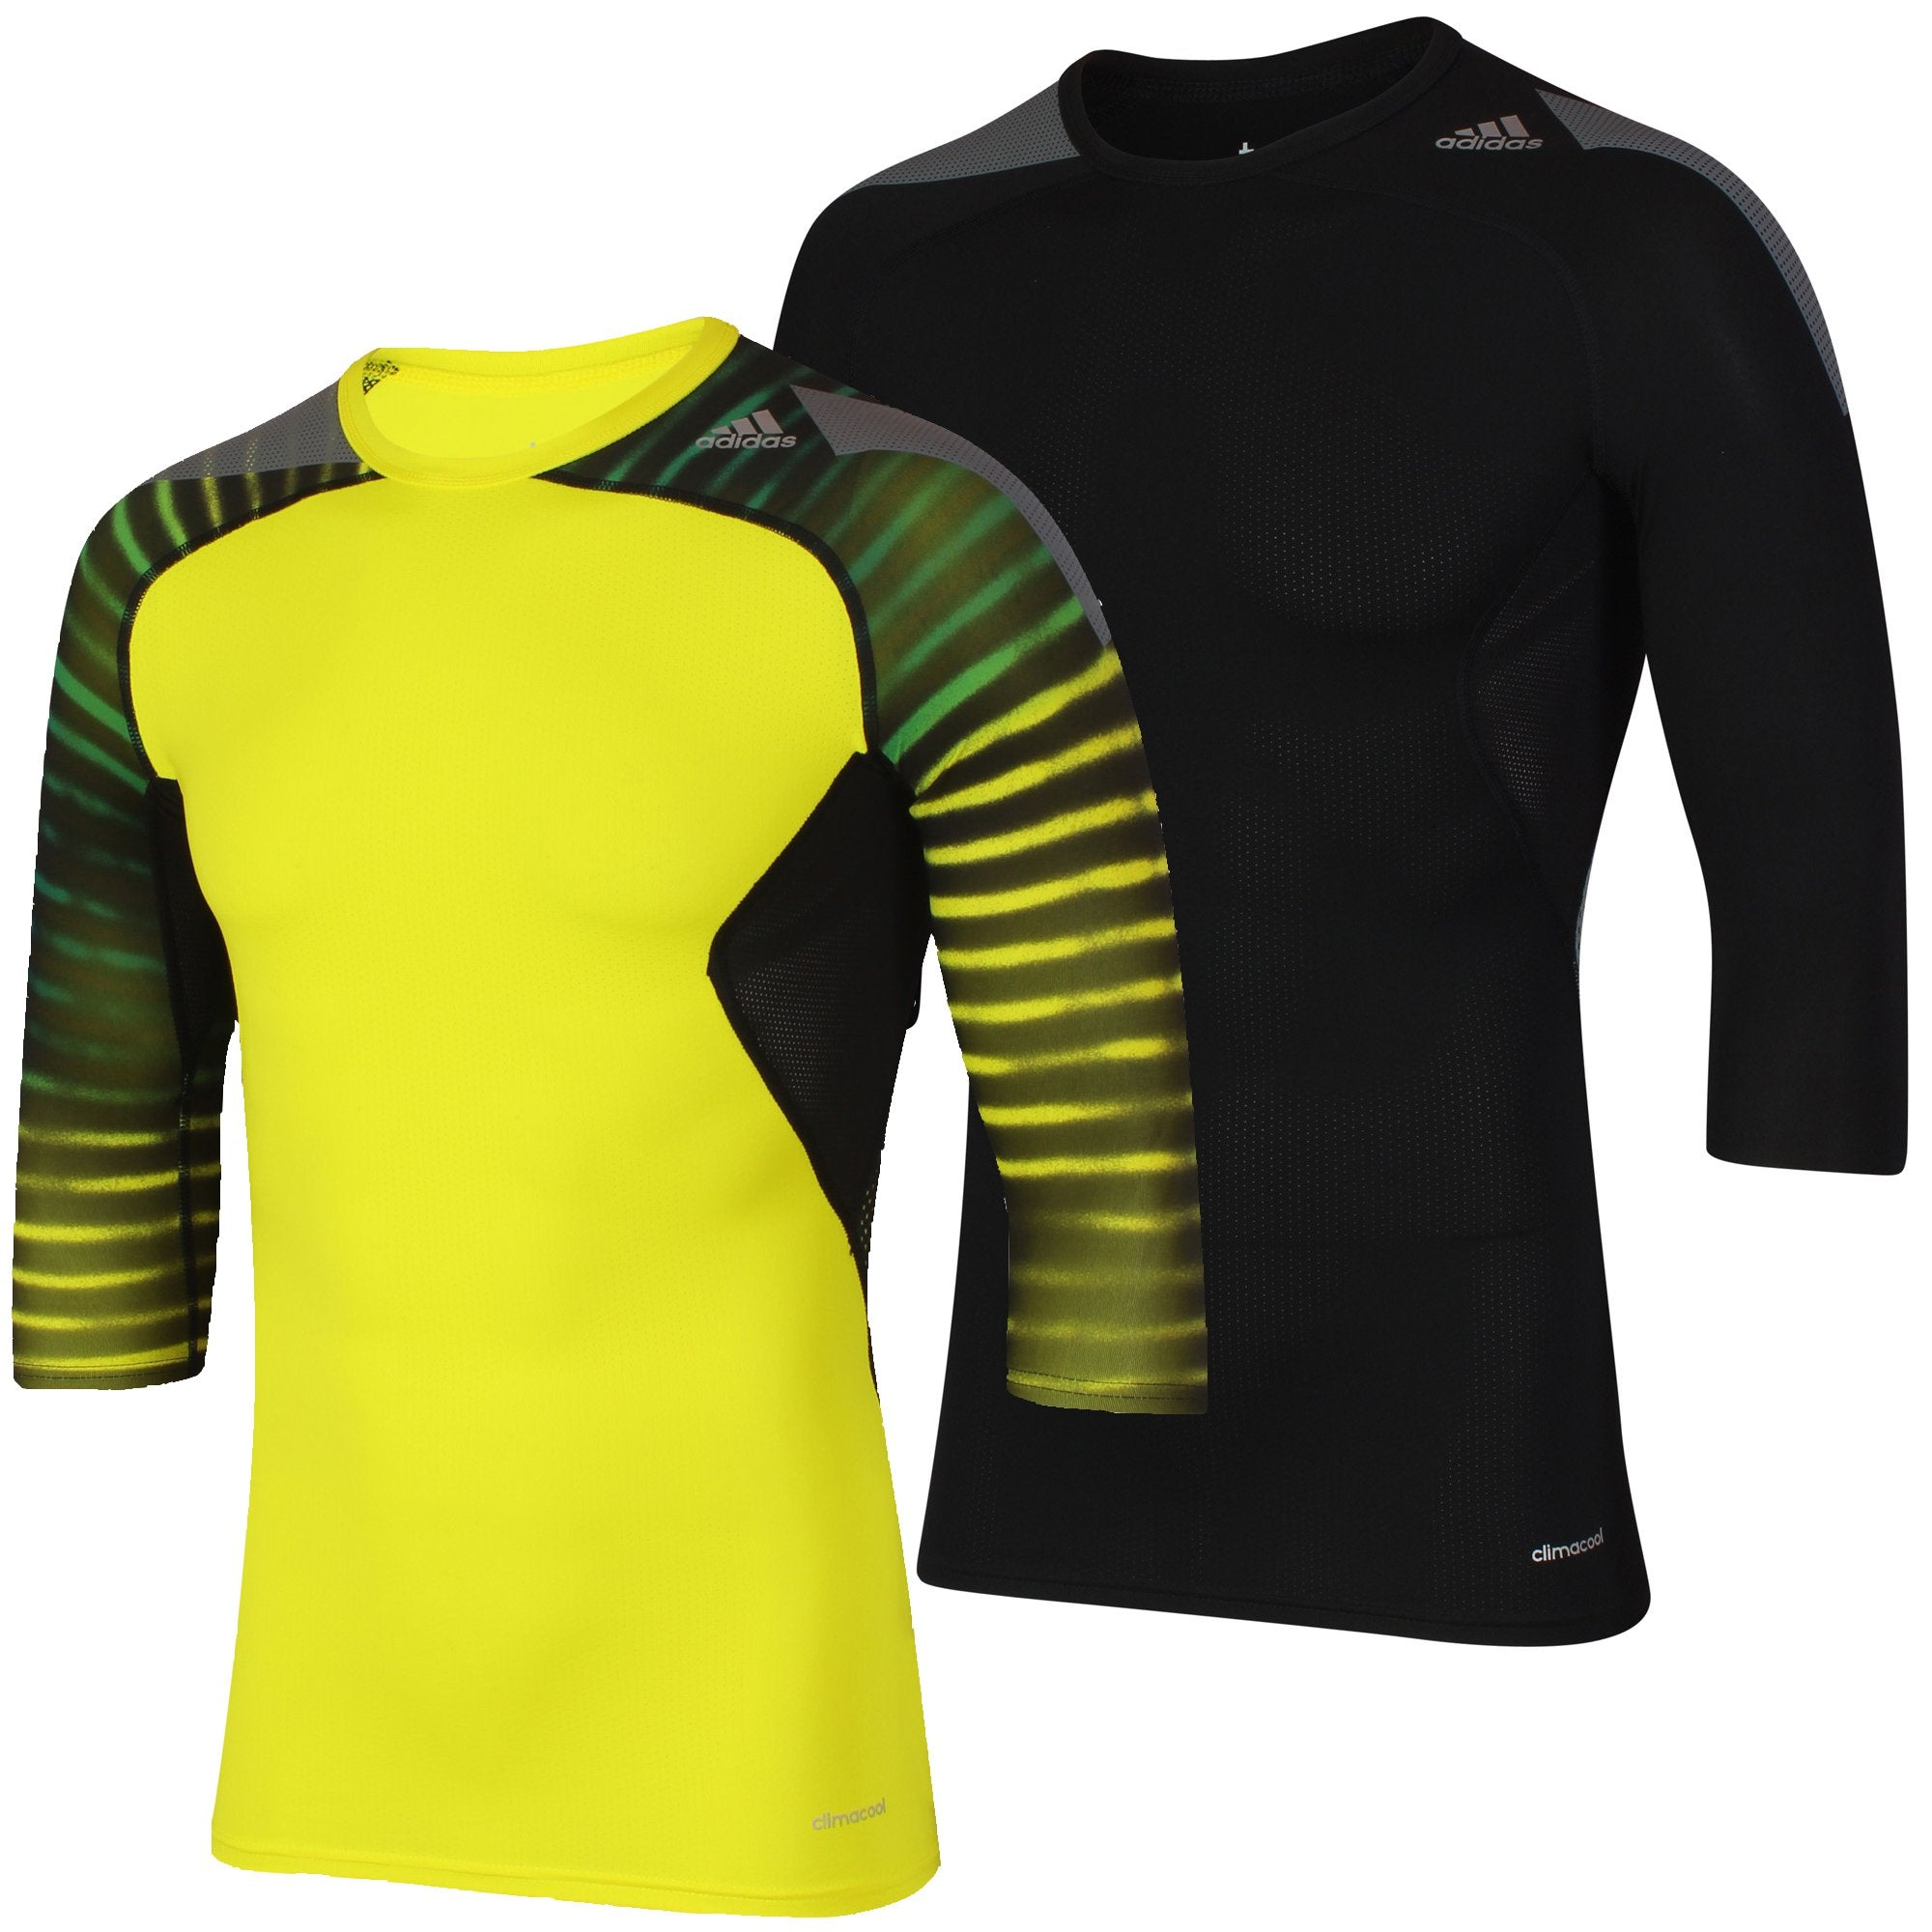 sneakers for cheap 2c0a7 5b46f adidas Men's TechFit climacool 3/4 Length Compression Top ...